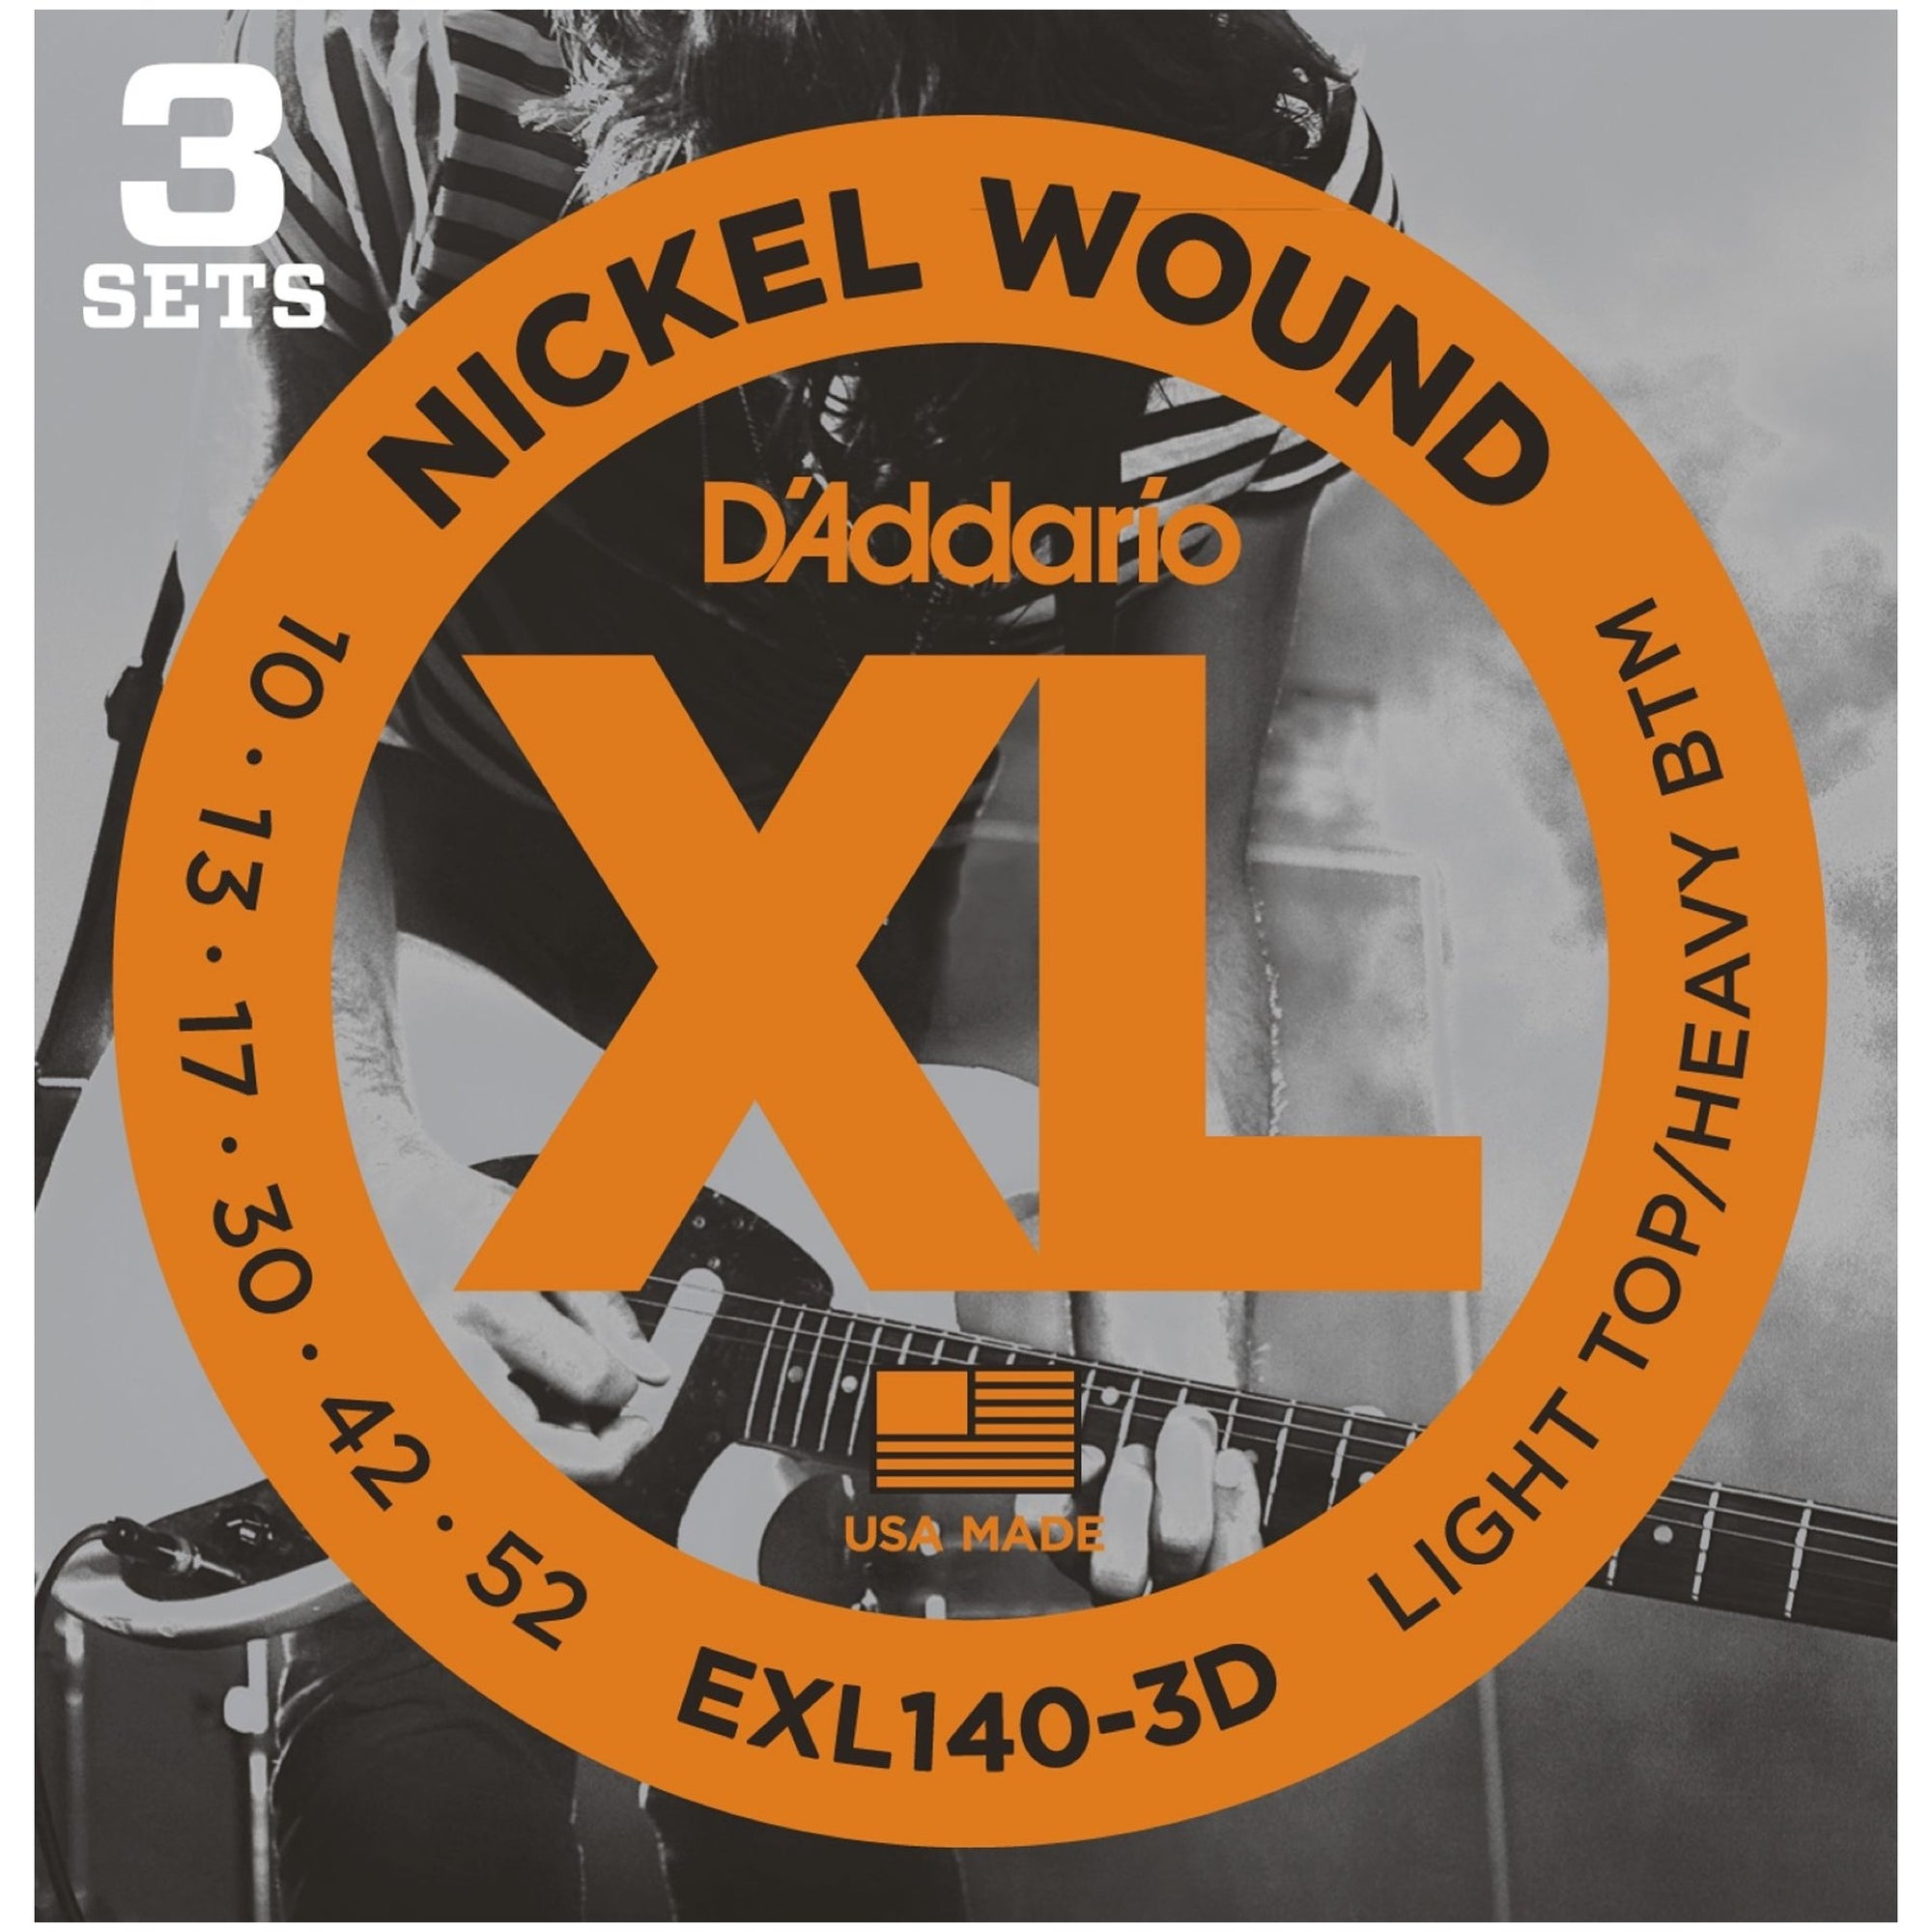 D'Addario EXL140 XL Electric Guitar Strings (Light Top/Heavy Bottom, 10-52), 3-Pack